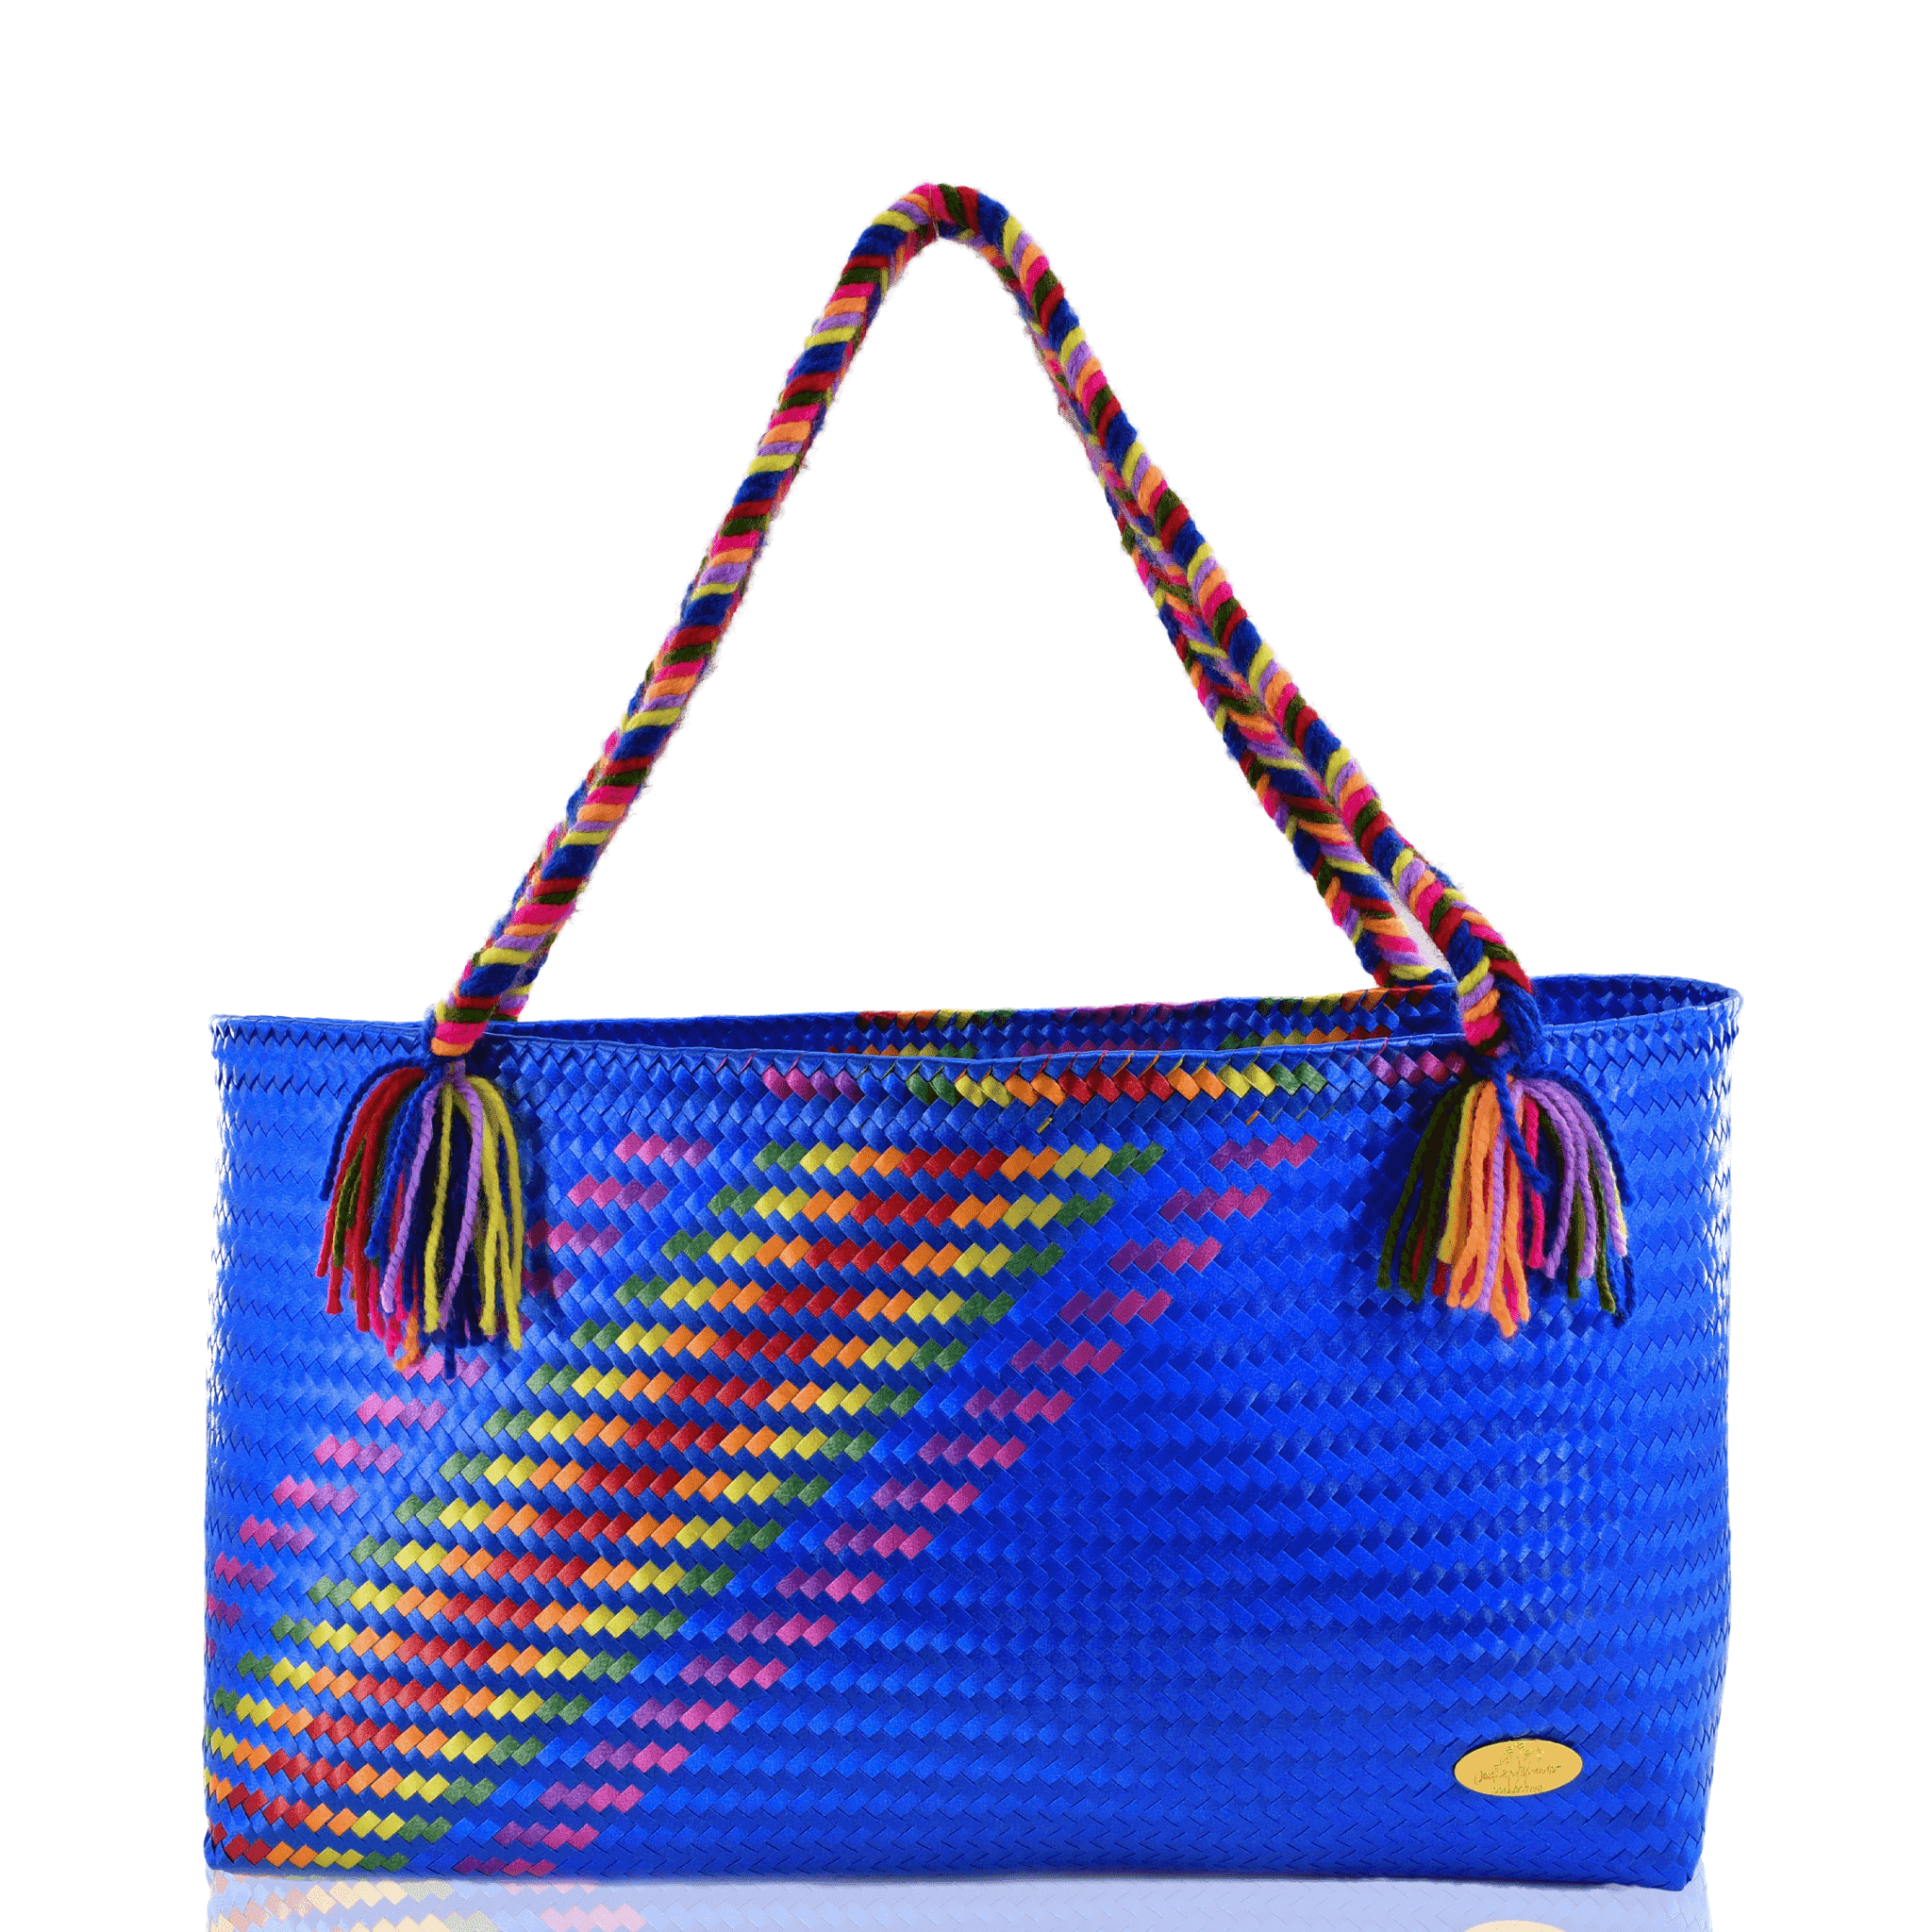 Shop the Nicky Bag in Splash of Rainbow Collection